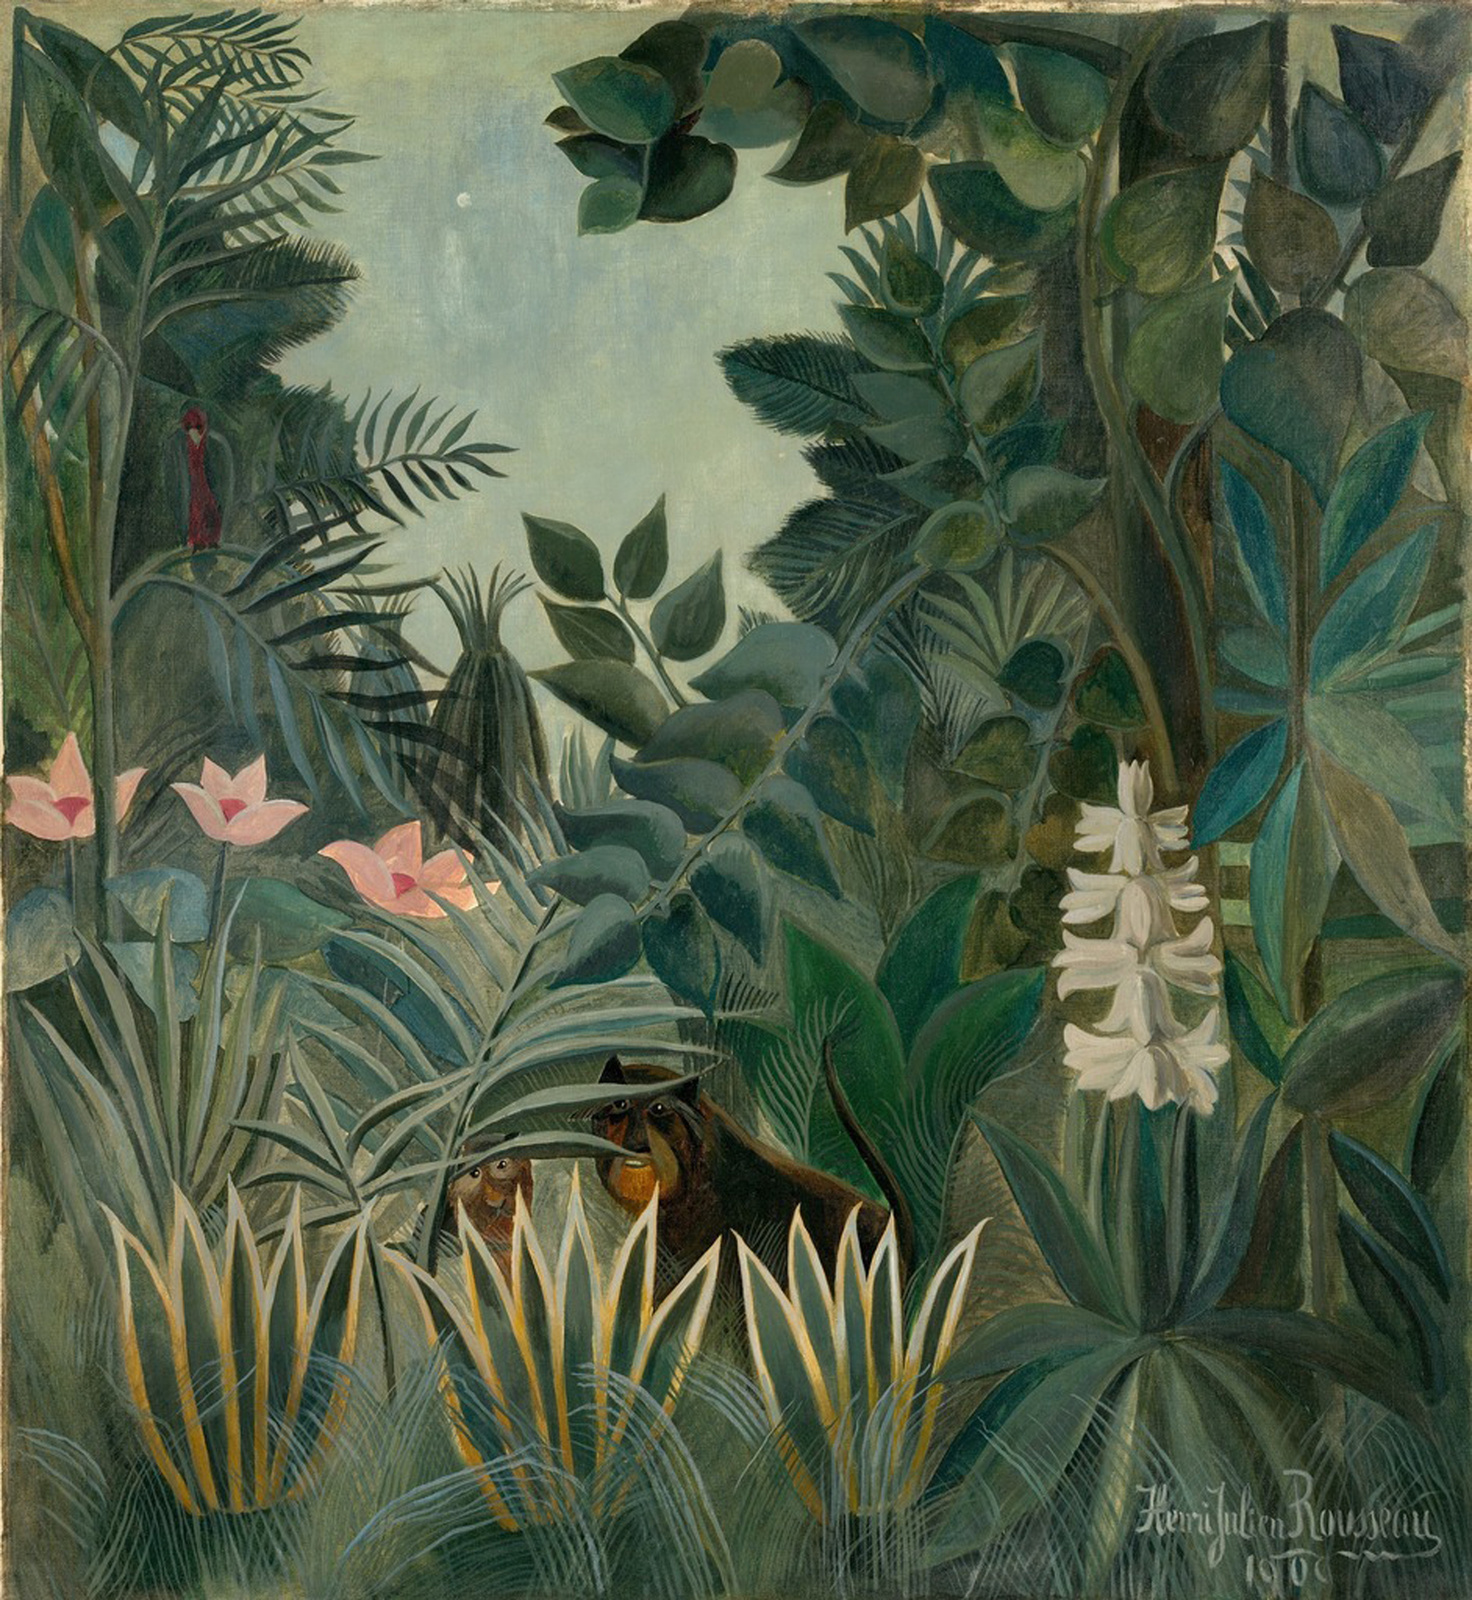 La jungle équatorial, 1909